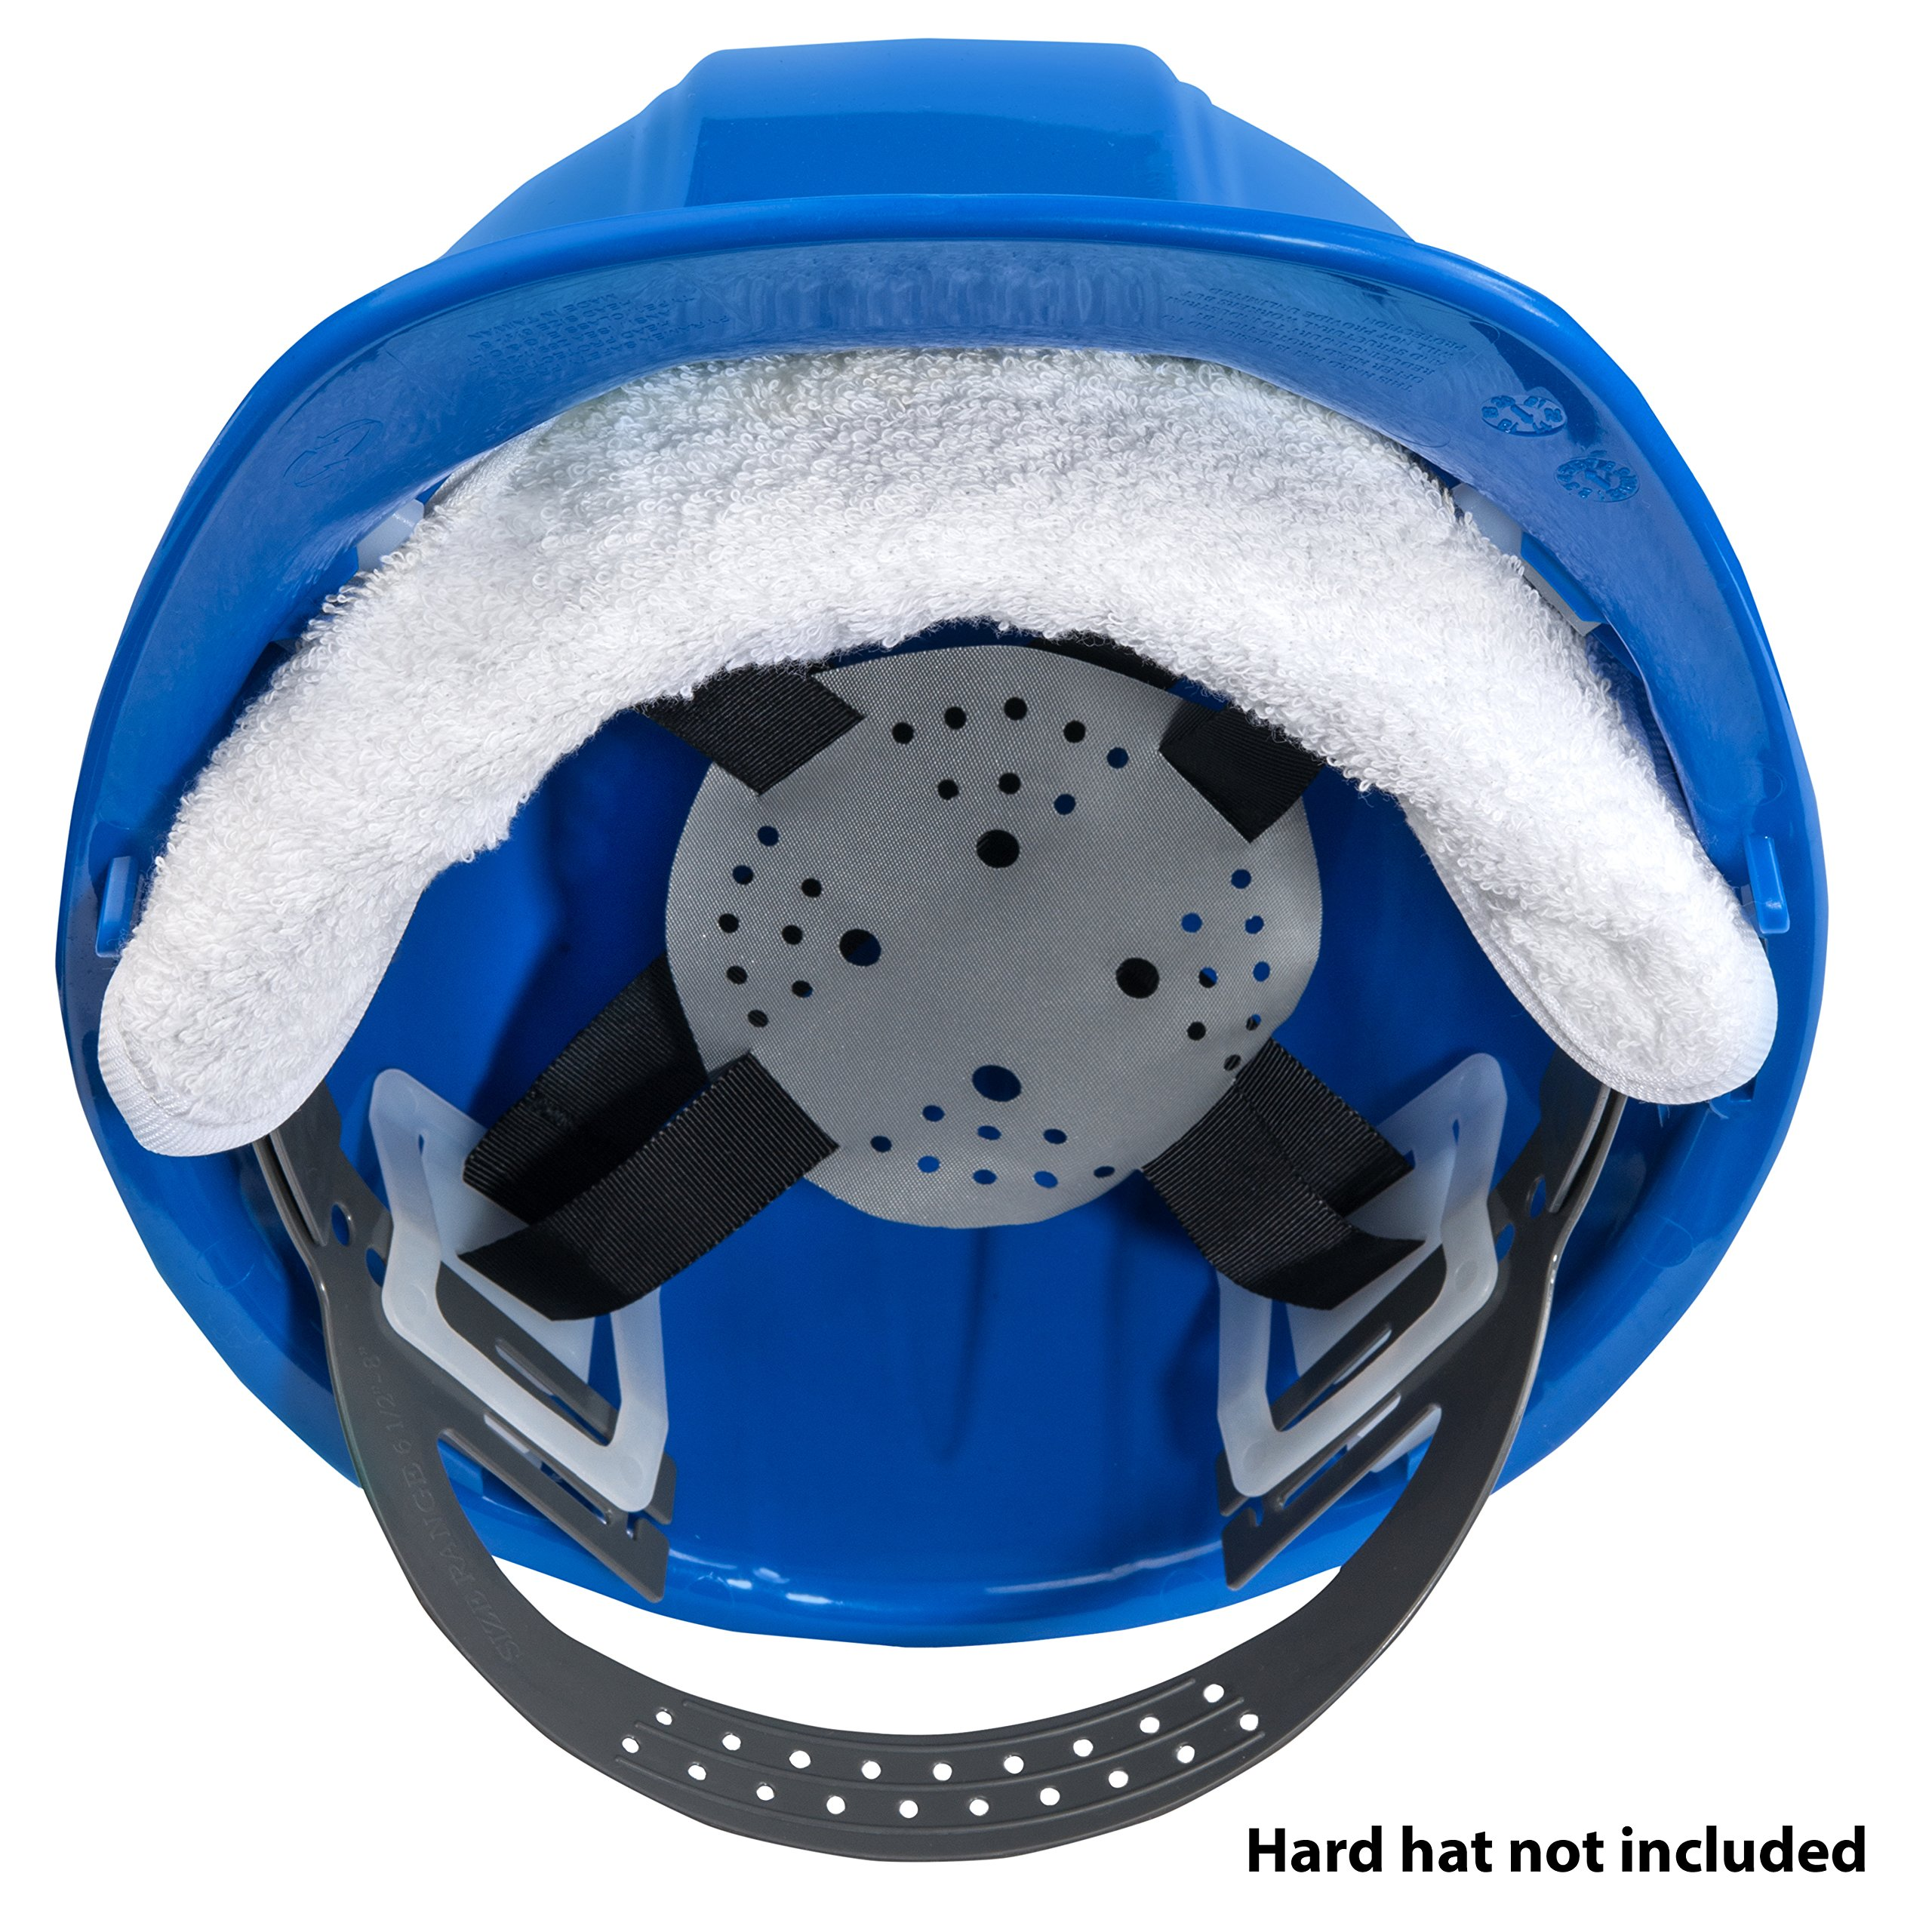 THREE Cotton Sweatbands for hard hats SOFT COTTON - EASY VELCRO ATTACHMENT - BEST VALUE - WASHABLE AND ESPECIALLY EASY TO ATTACH TO HARD HATS. by Paulex Solutions (Image #5)